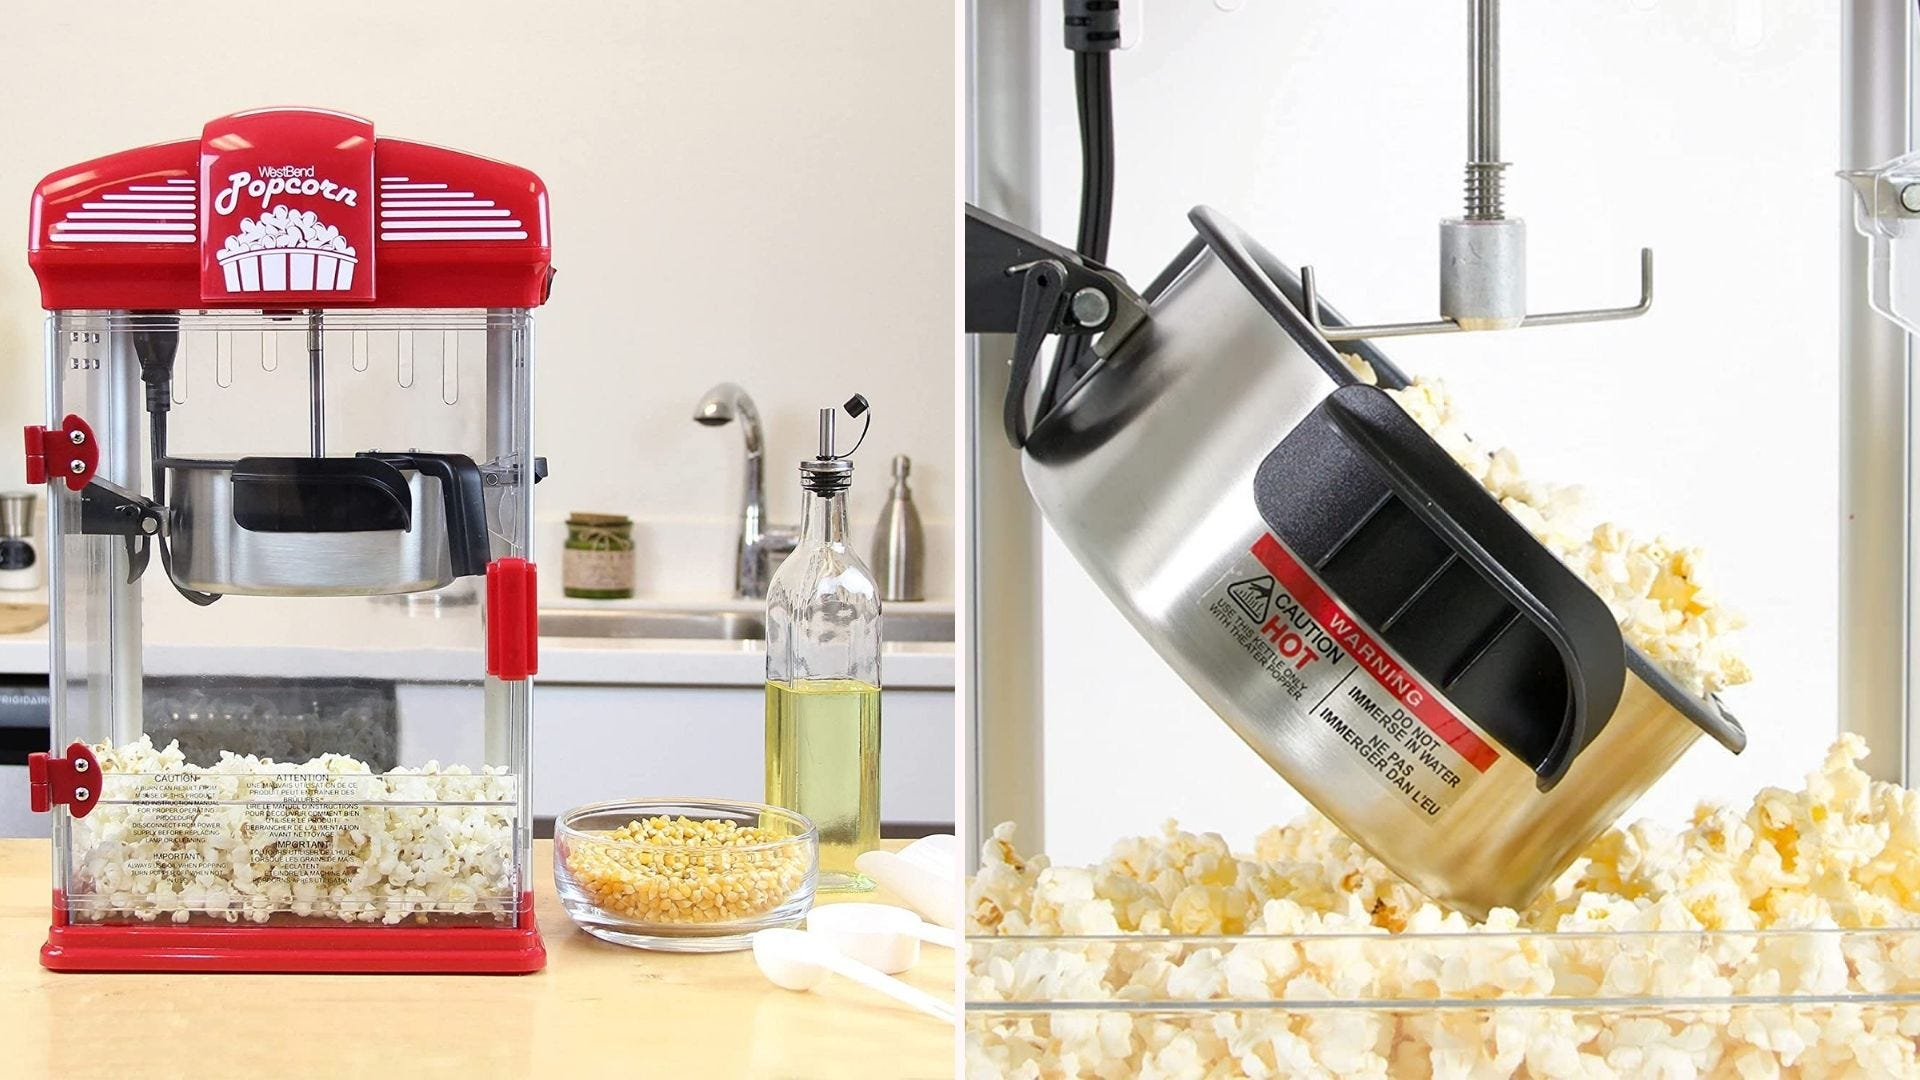 A red popcorn maker sitting on a counter; a close-up of popped popcorn coming out of the kettle